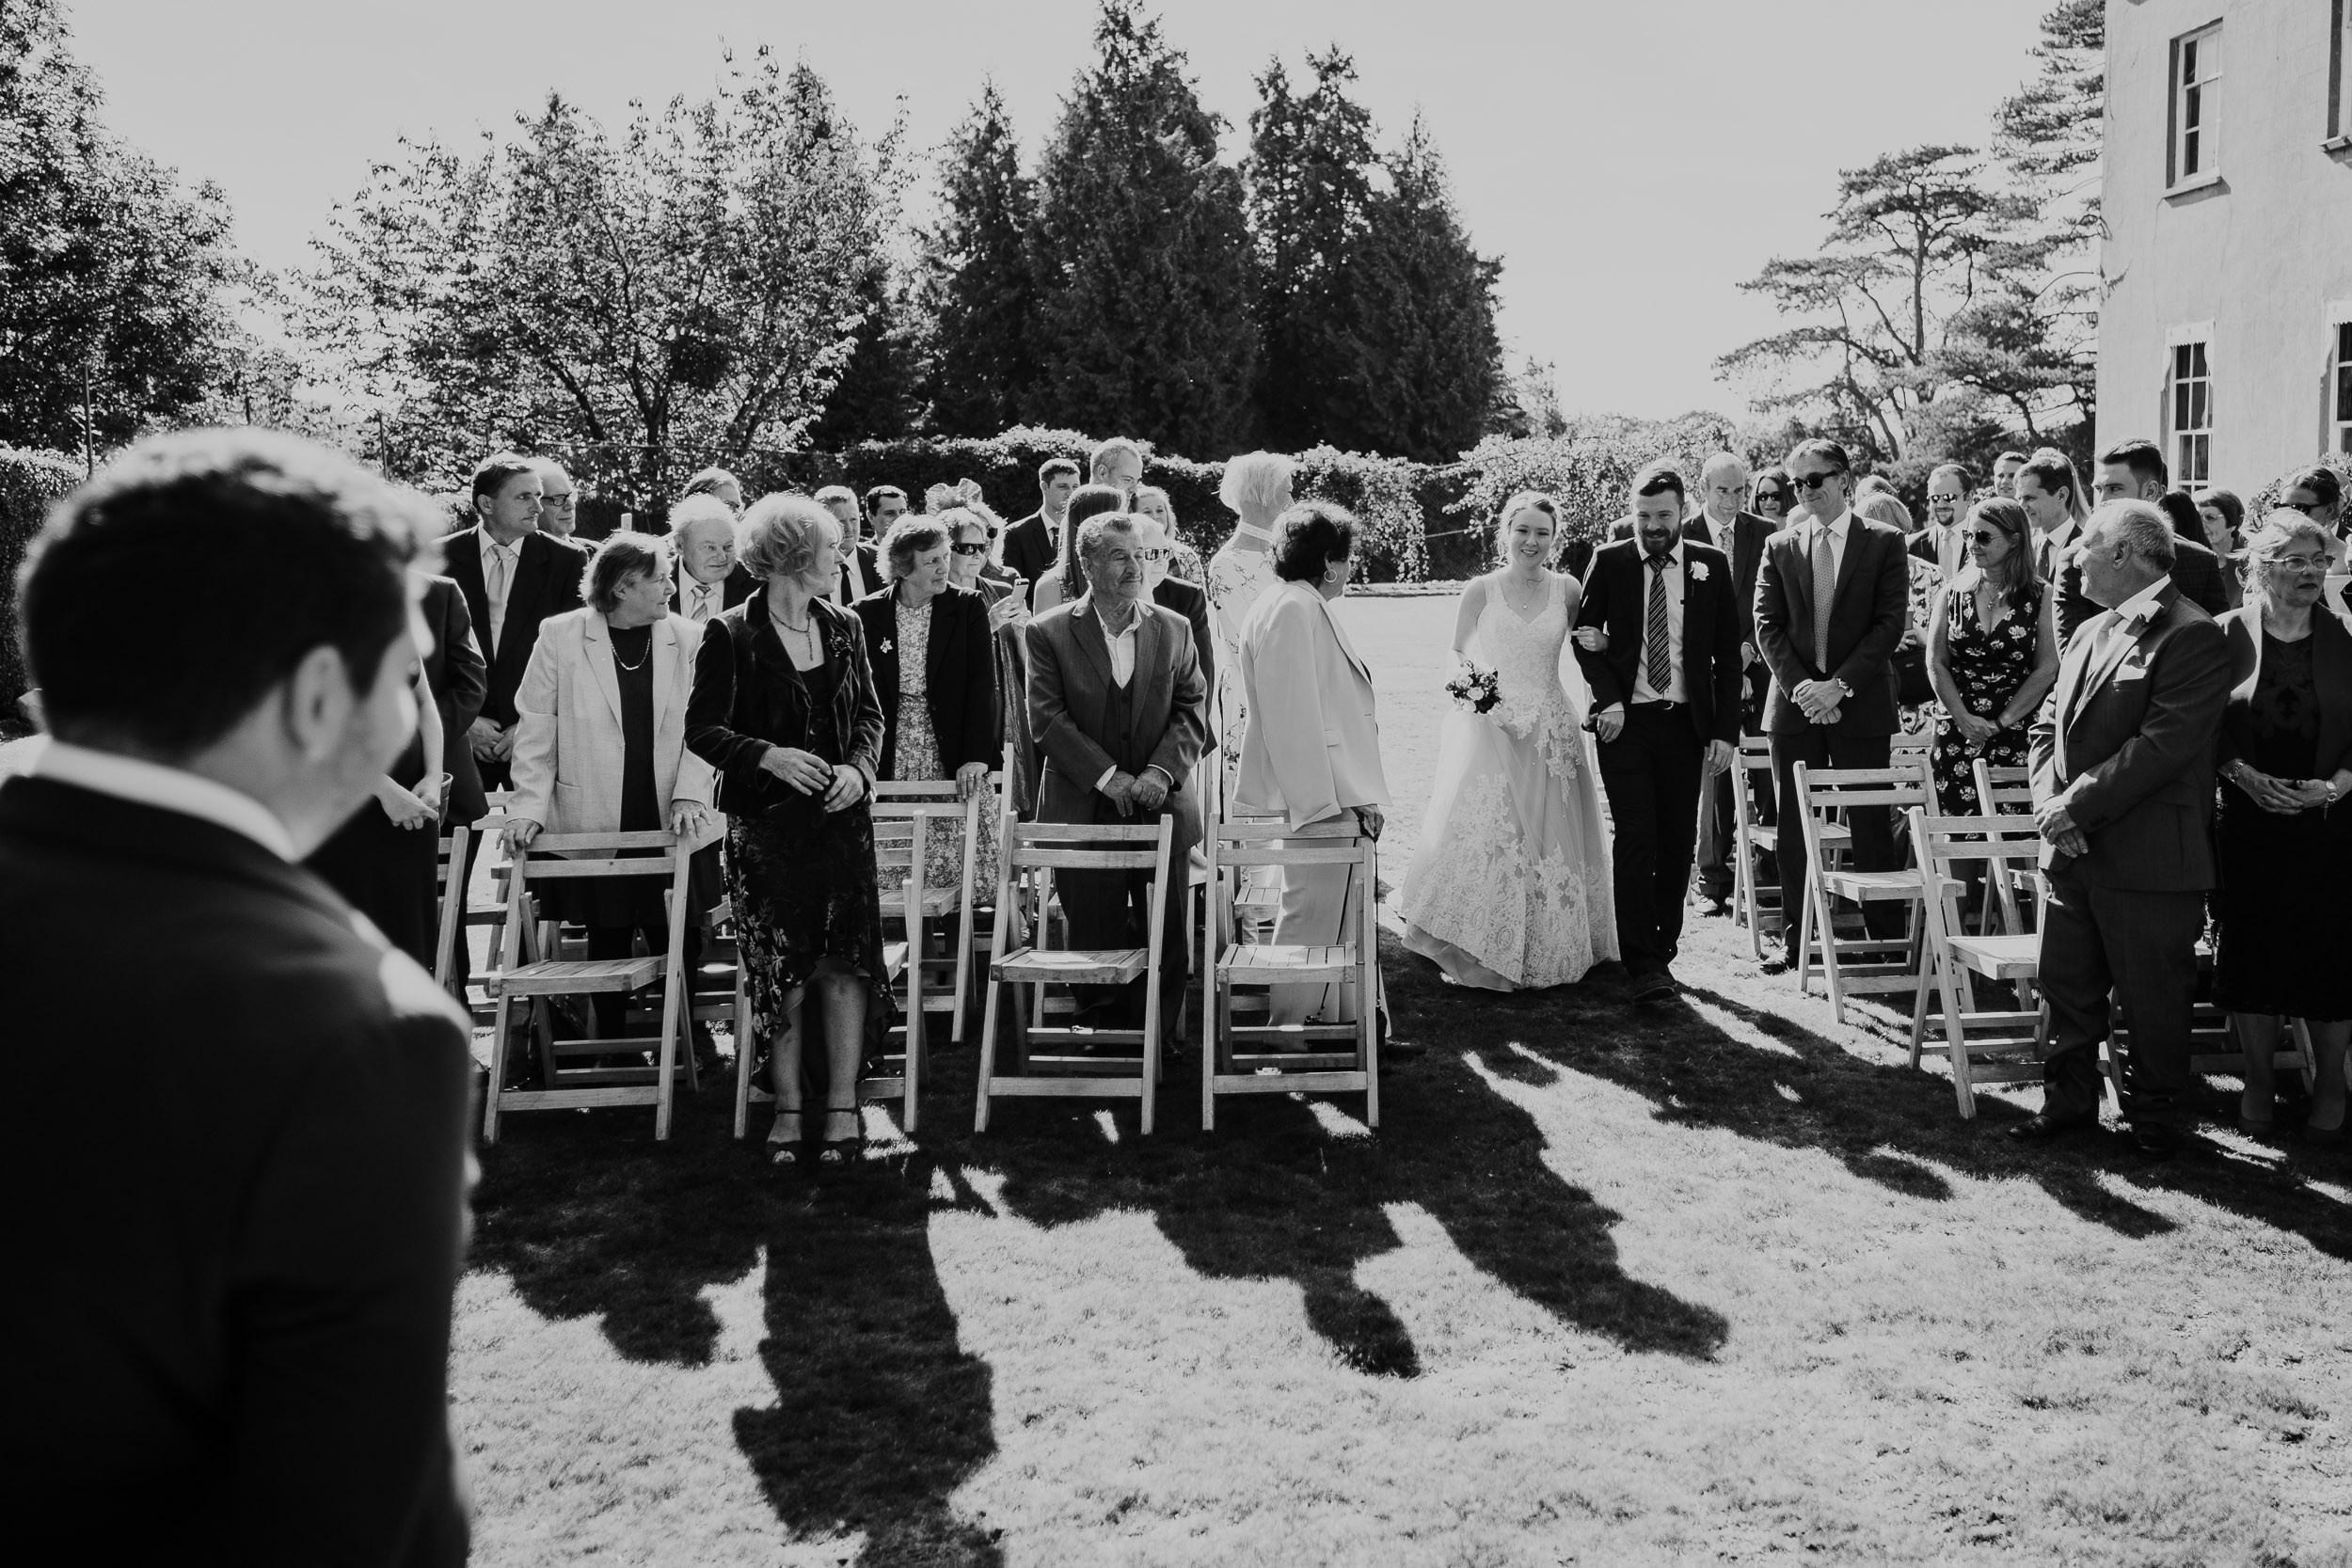 Pennard House Wedding - Outdoor Ceremony